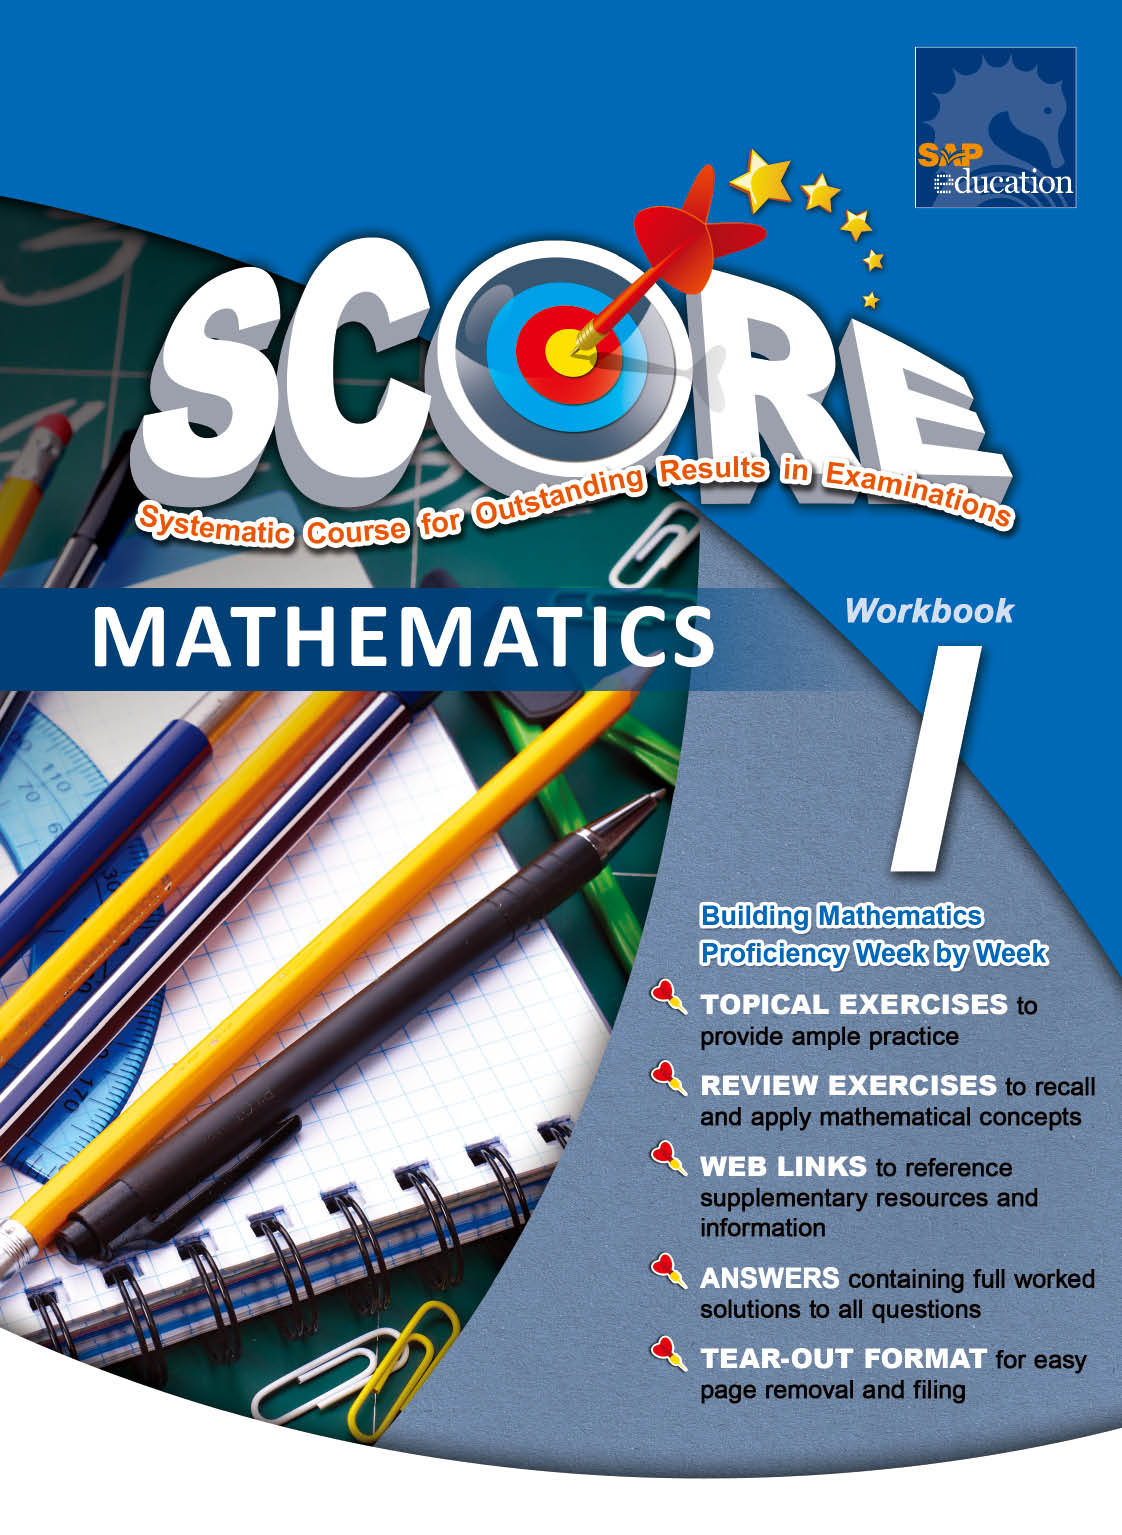 SCORE Mathematics Workbook 1 | OpenSchoolbag